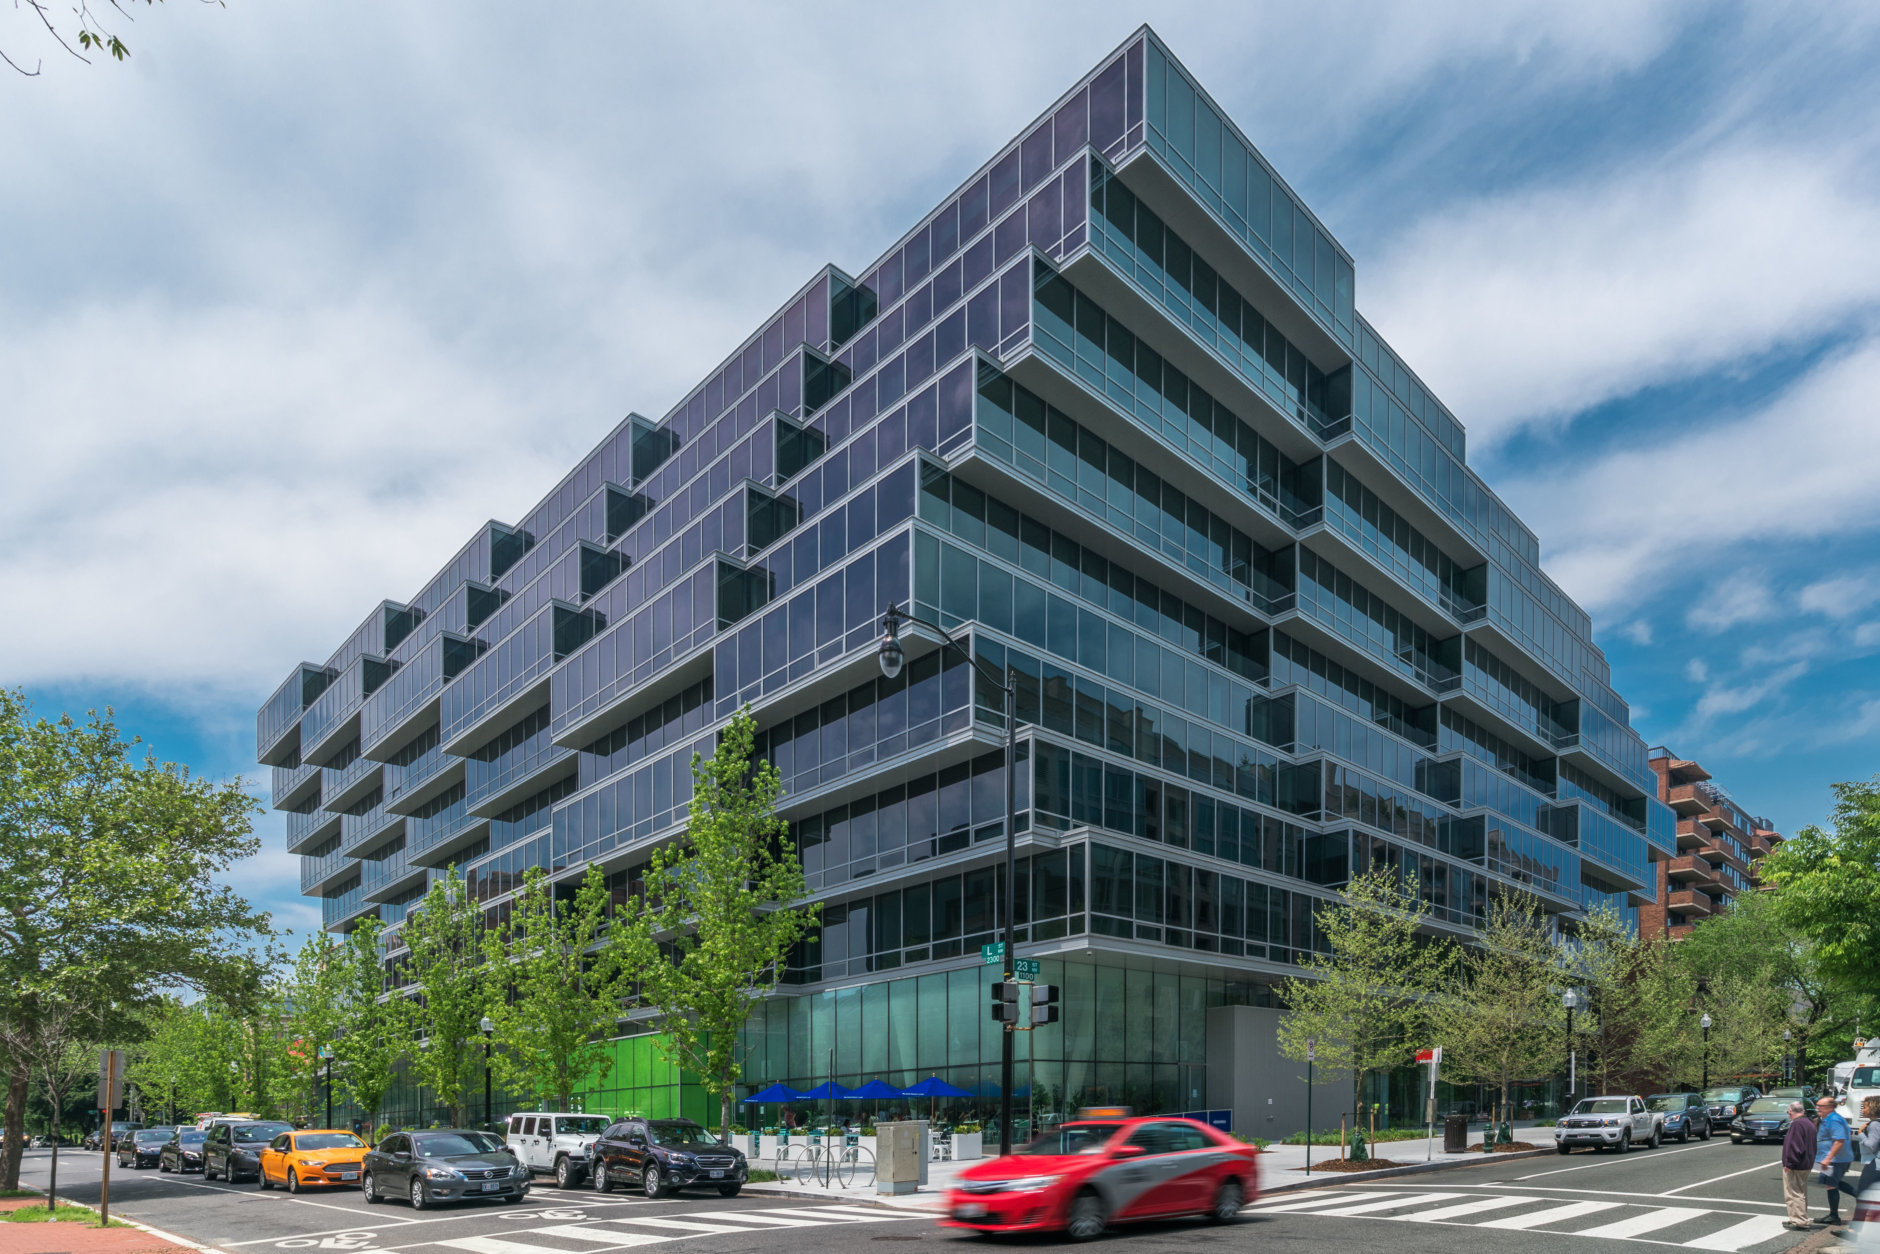 Real estate research firm Delta Associates says that the absorption of Class A apartment units, like the Apartments at Westlight, at the intersection of 23rd Street and L Street, NW, are skyrocketing. (Courtesy Eastbanc)